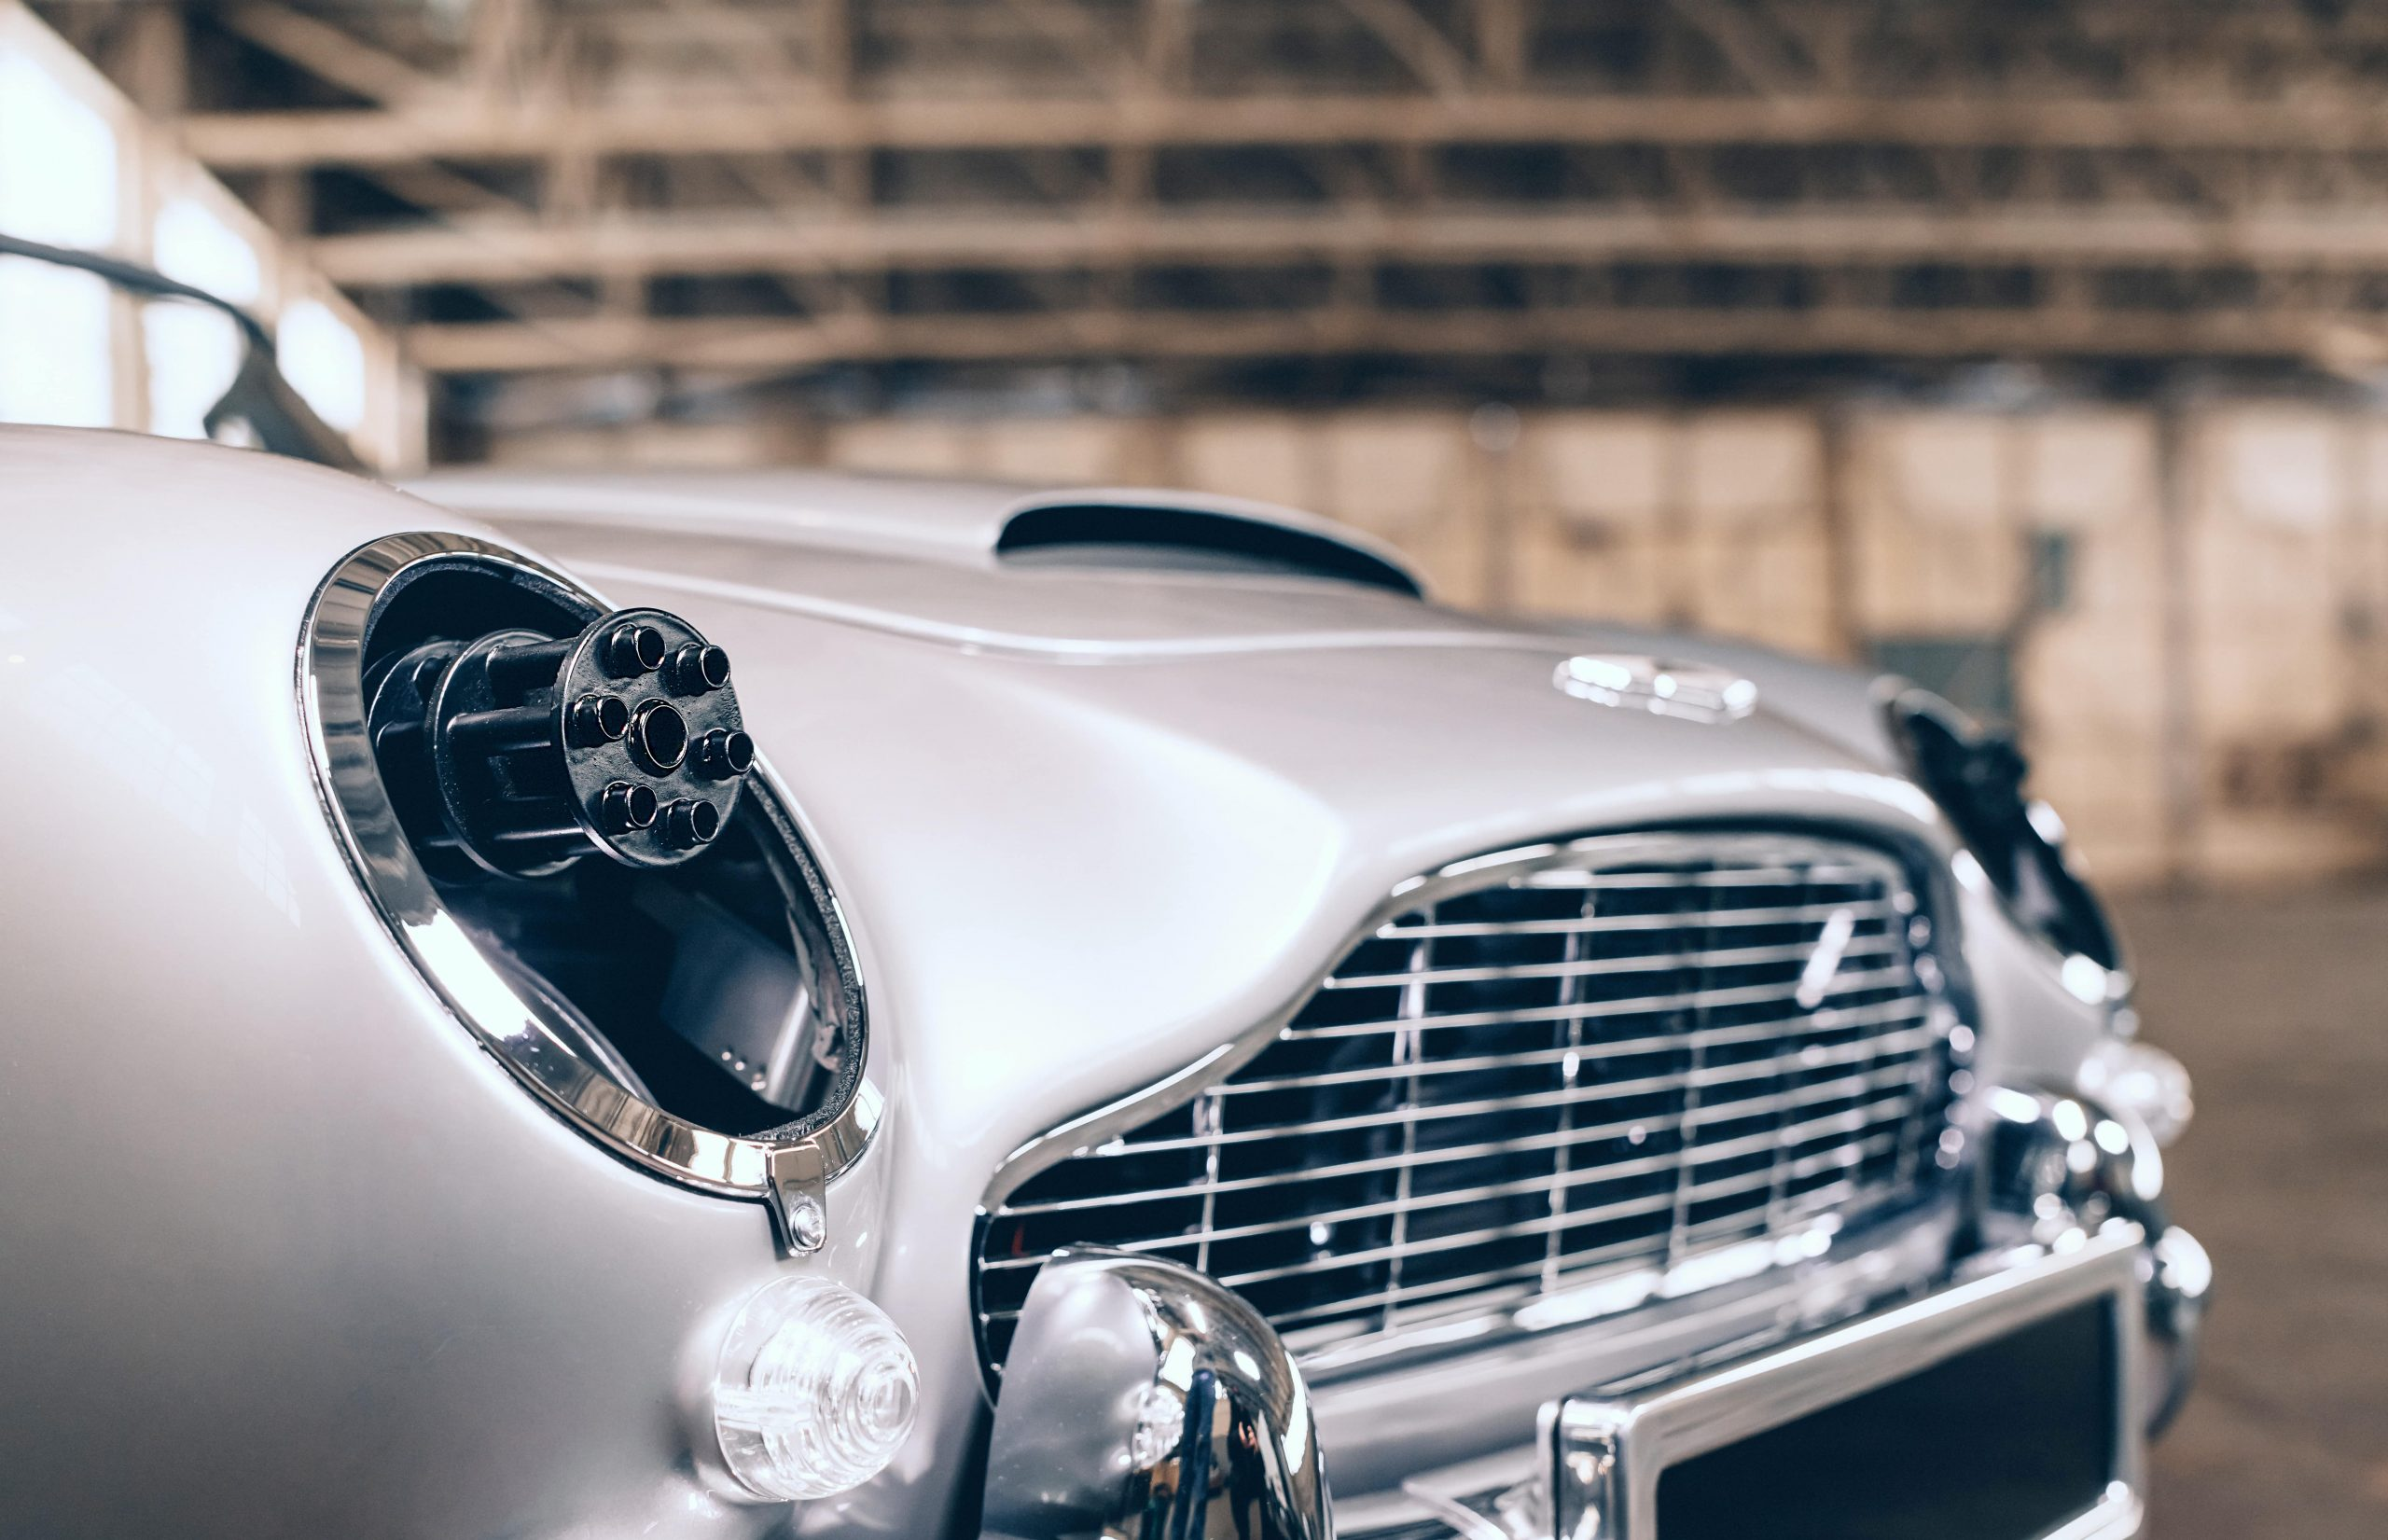 The Little Car Company No Time To Die DB5 guns